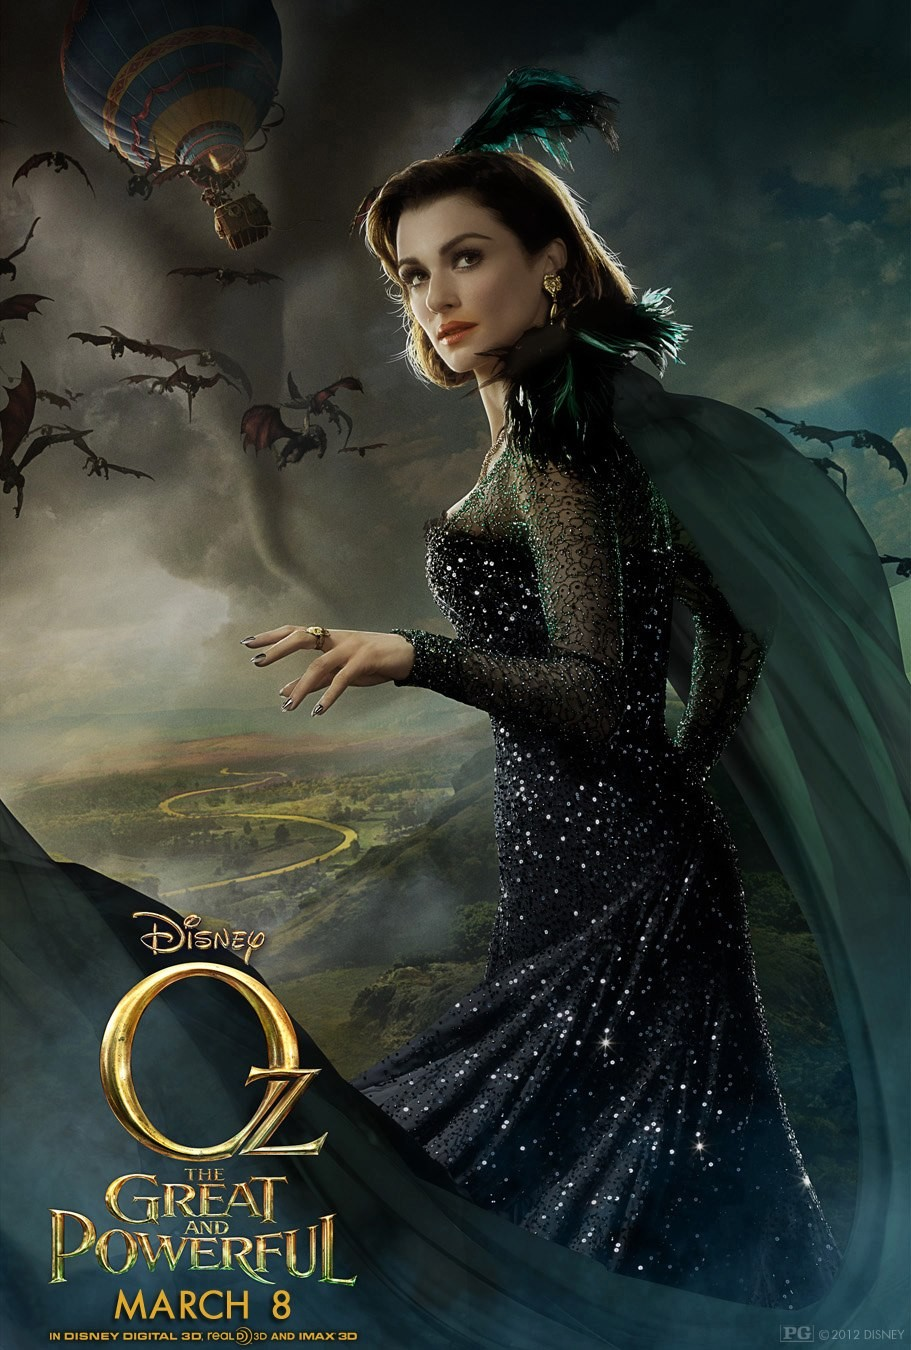 Oz the great and powerful character poster 2 blackfilm com read